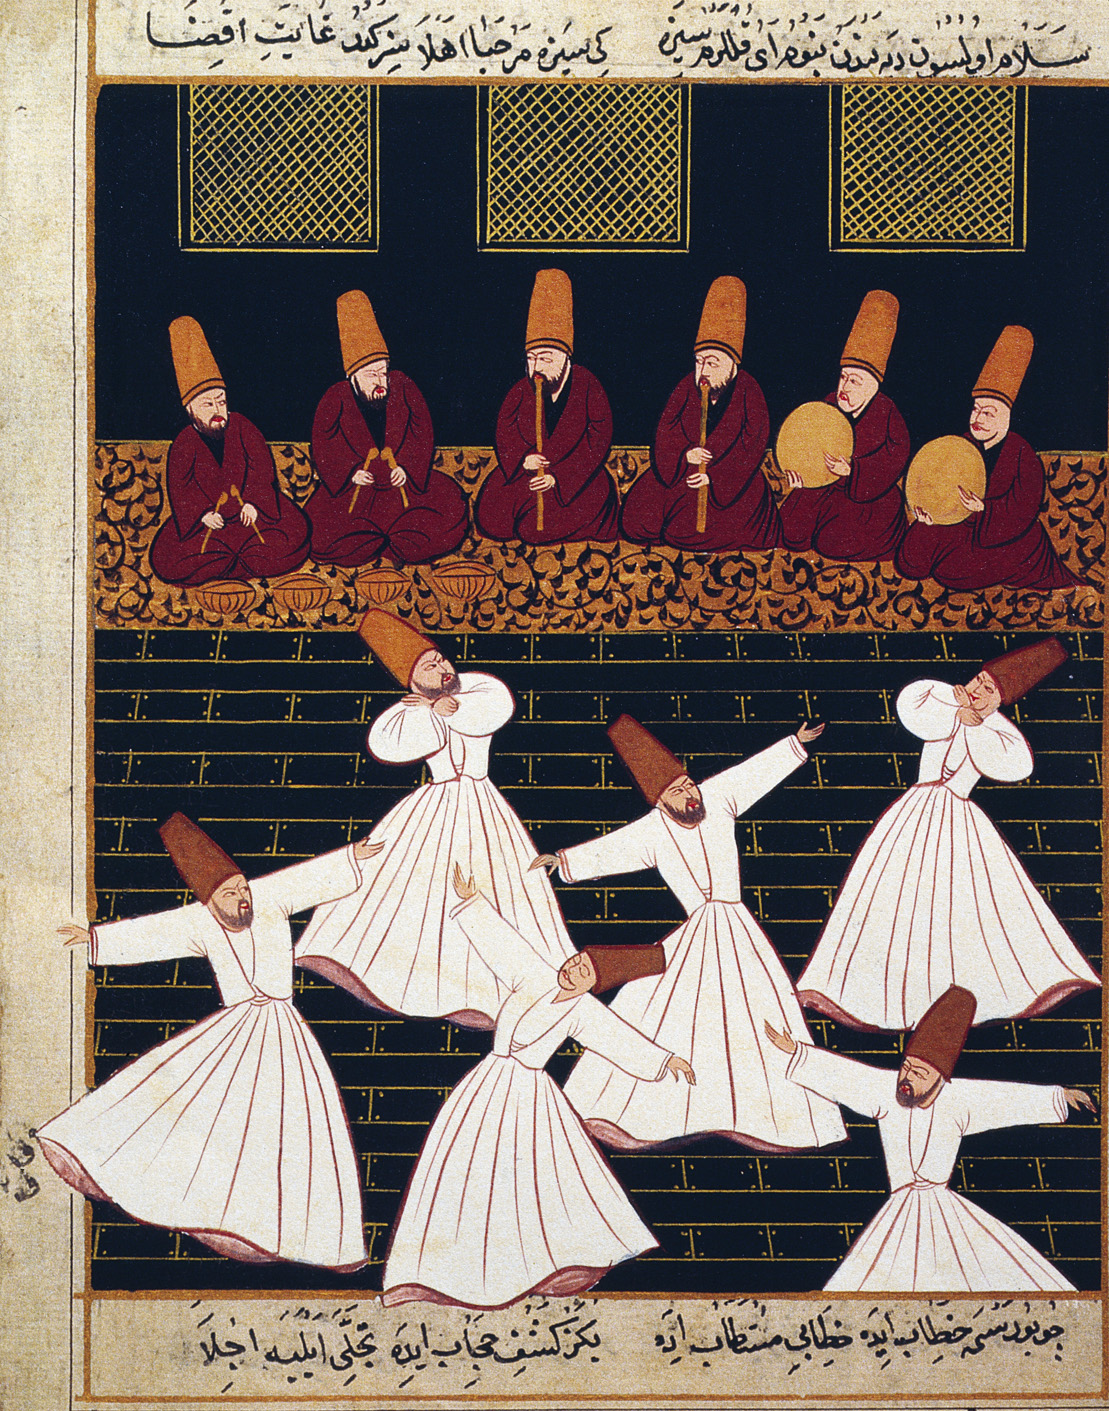 Ritual of the whirling dervishes at Konya, seventeenth century.